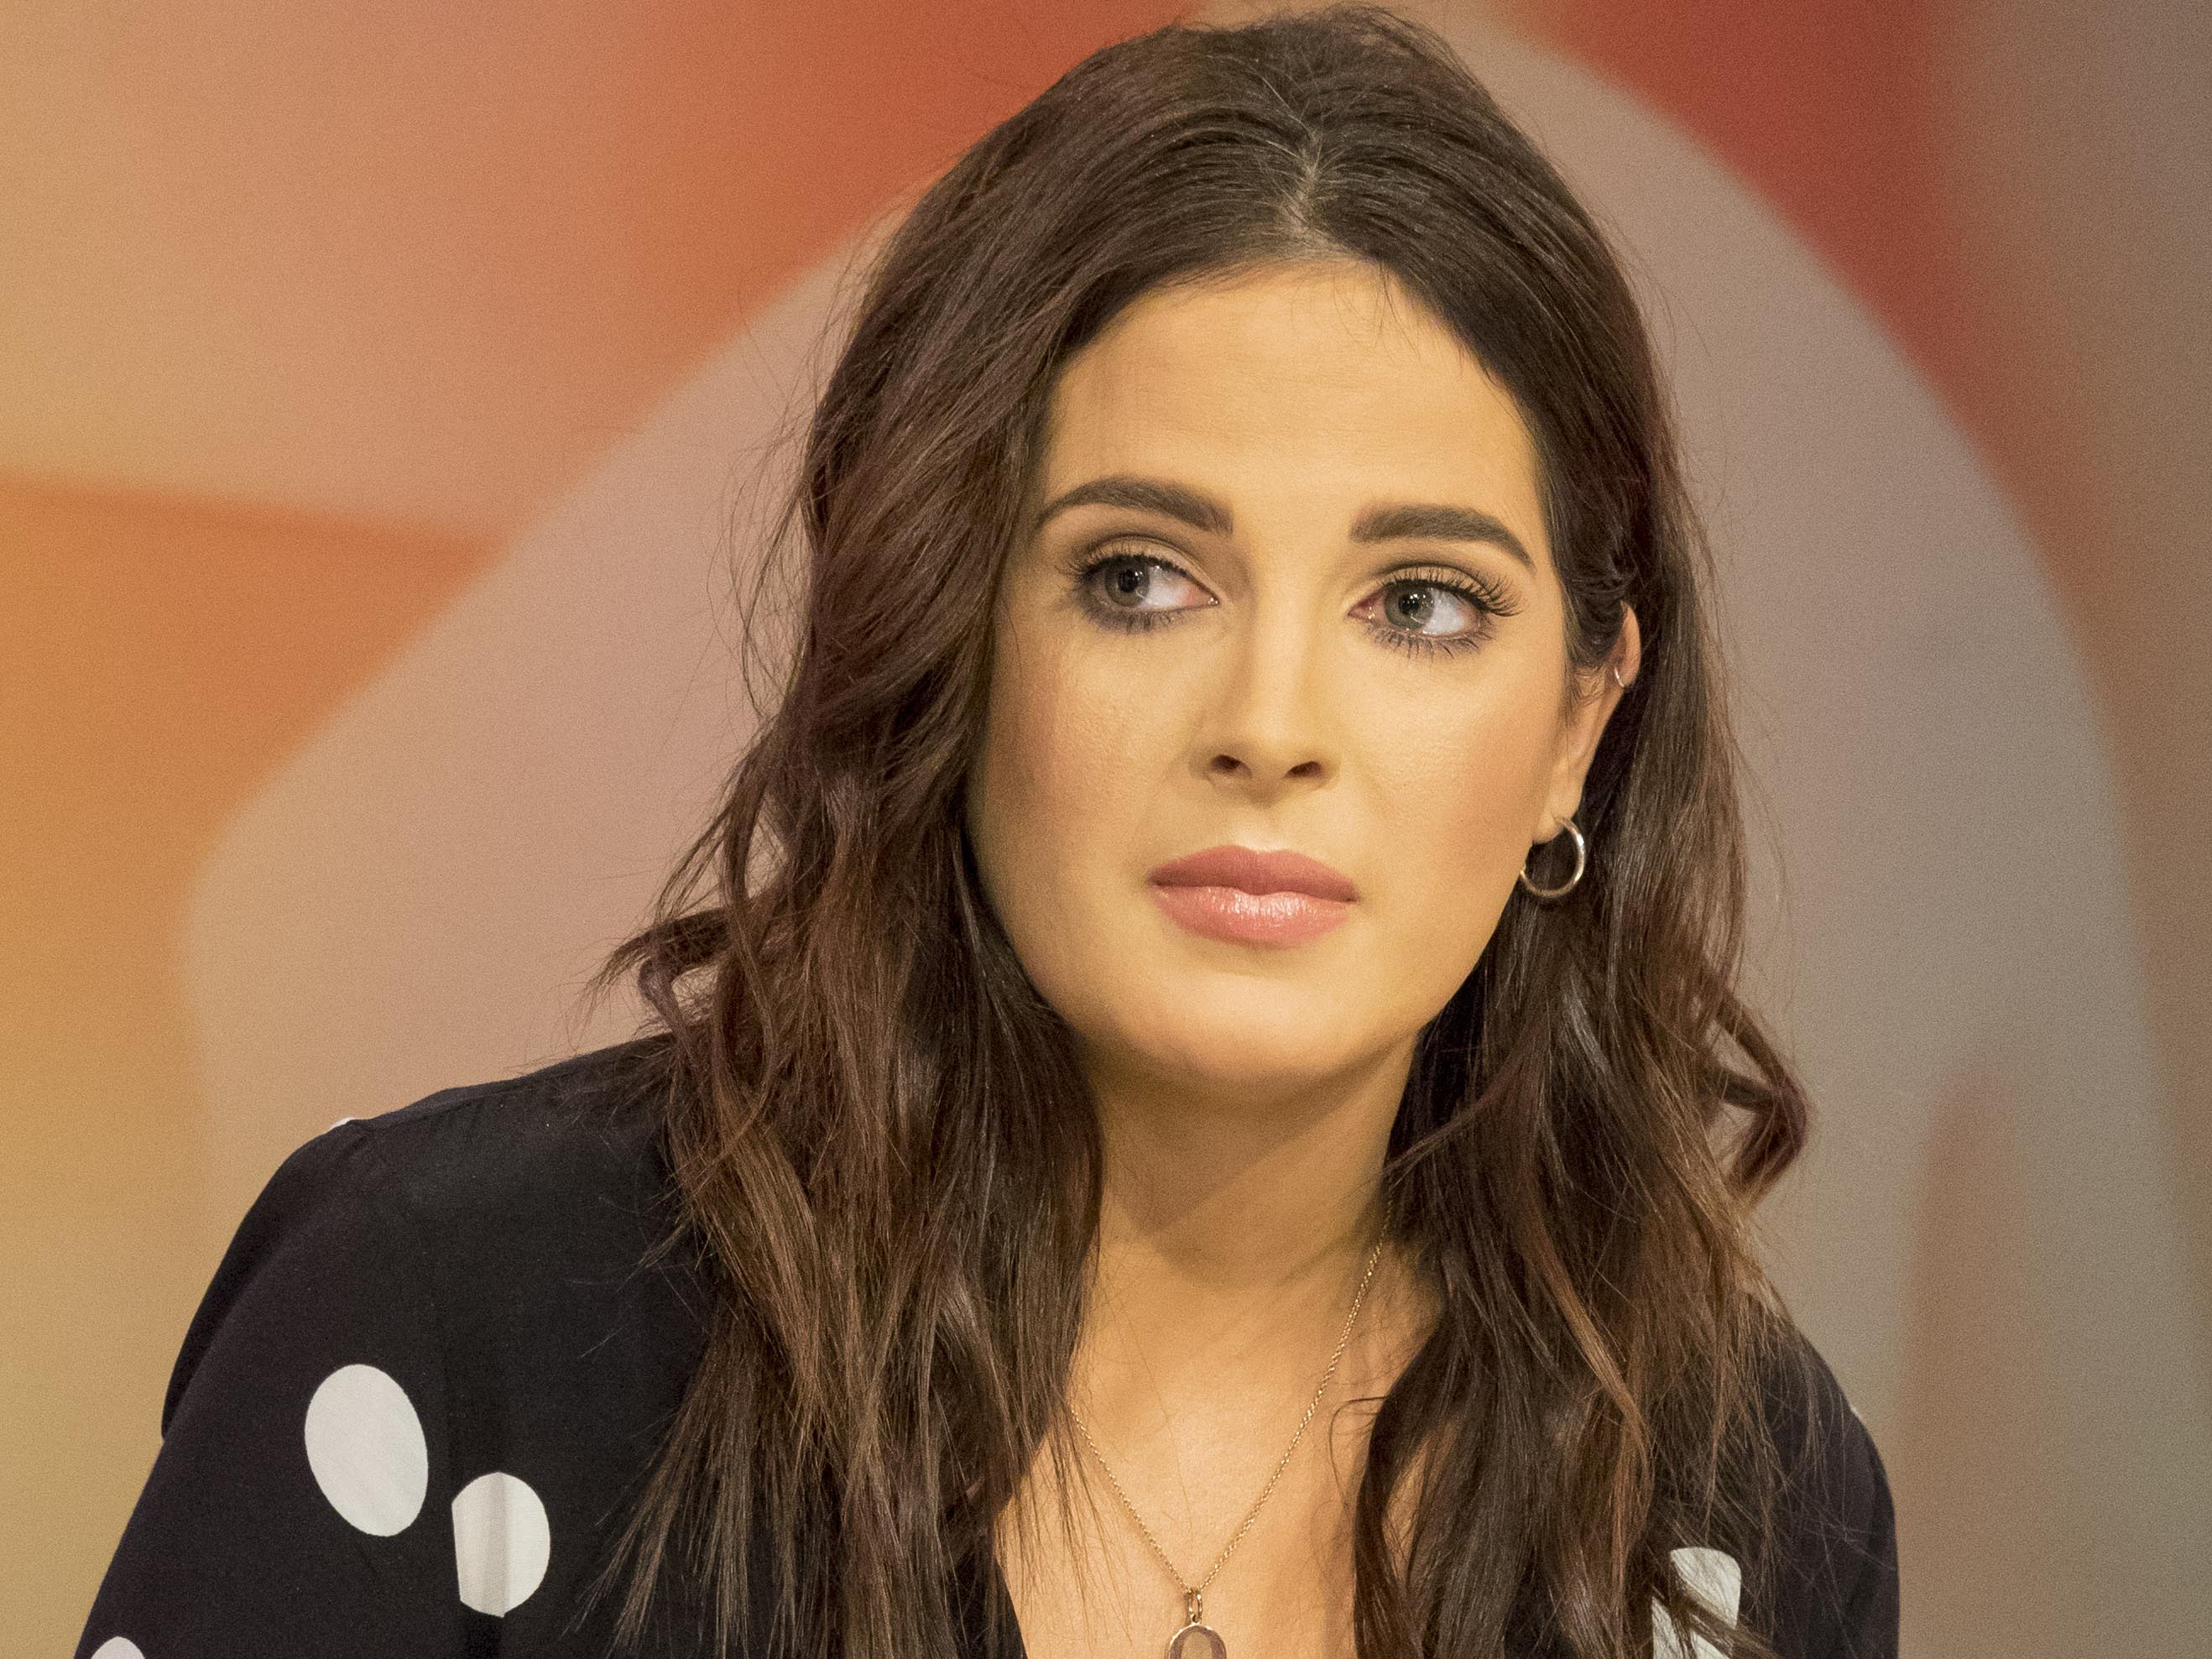 Discussion on this topic: Bianca ghezzi, binky-felstead/